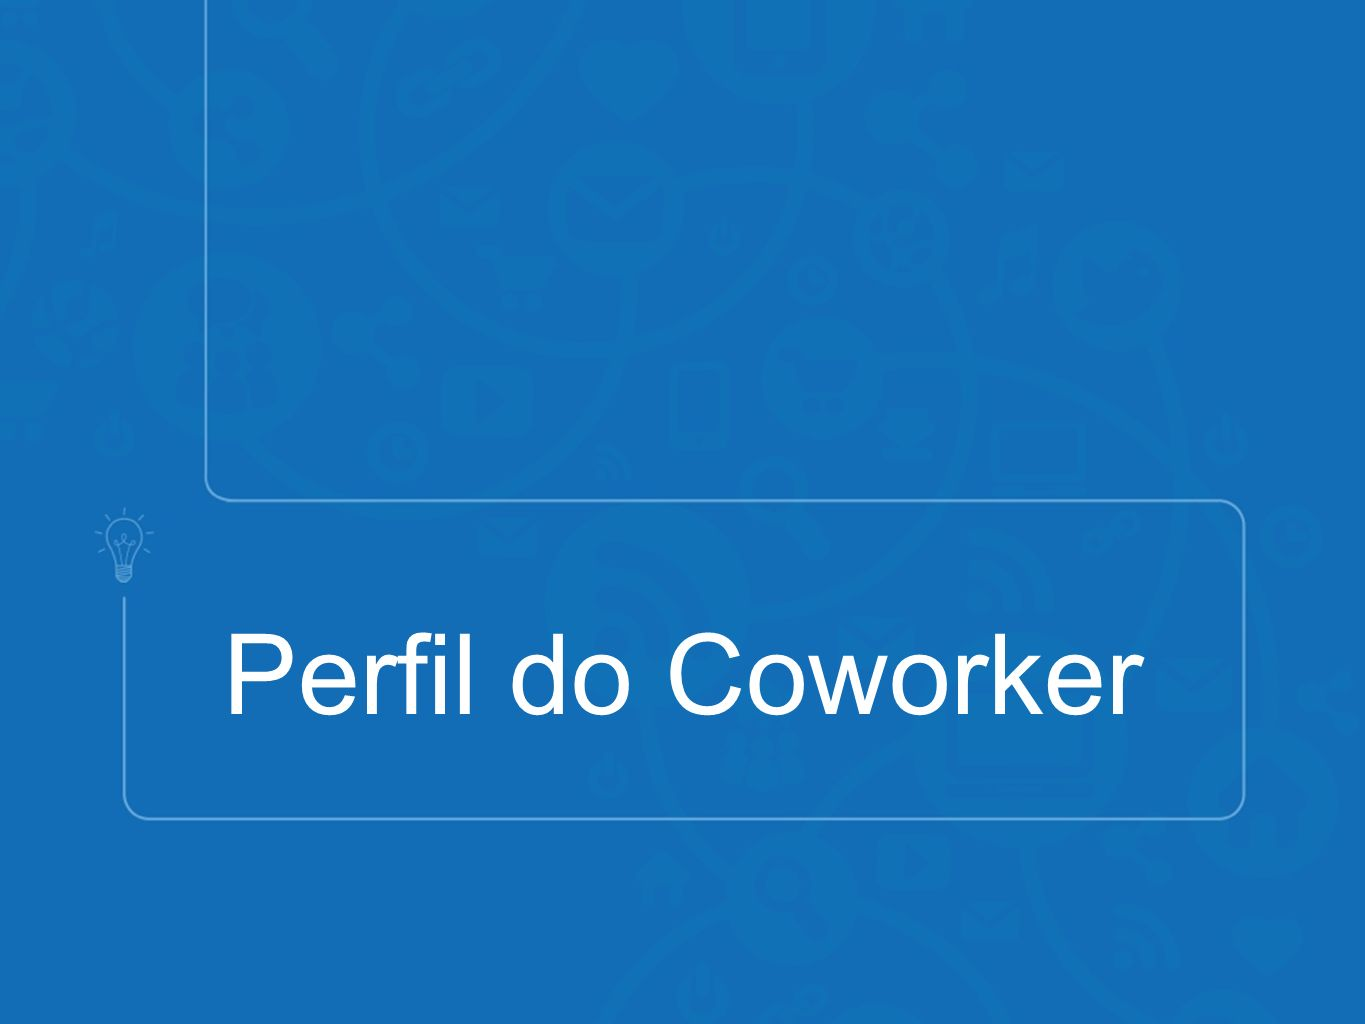 Perfil do Coworker